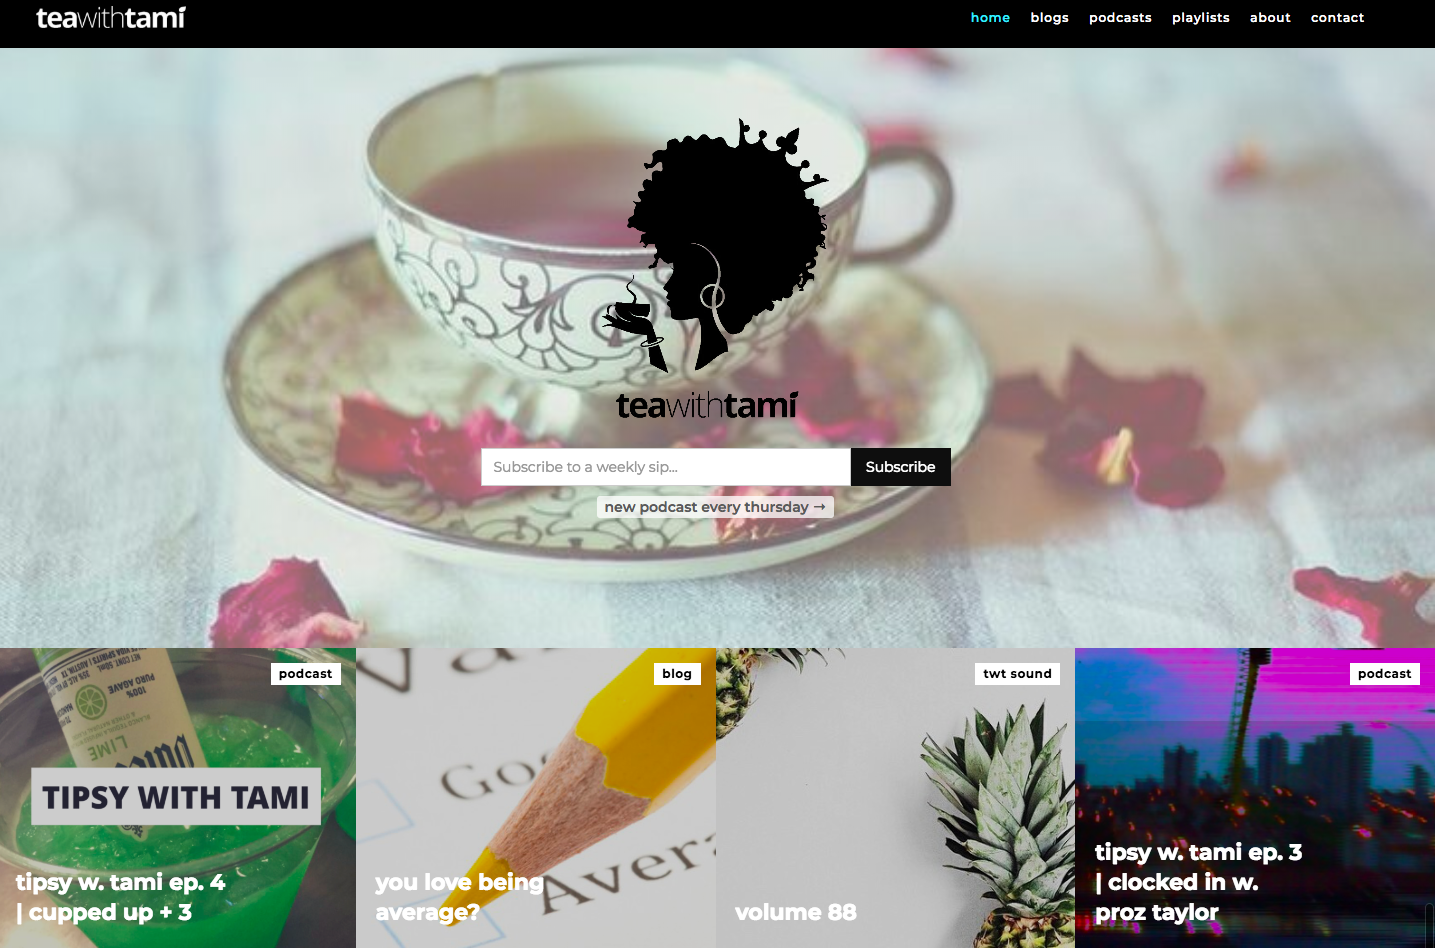 Tea with Tami landing page.